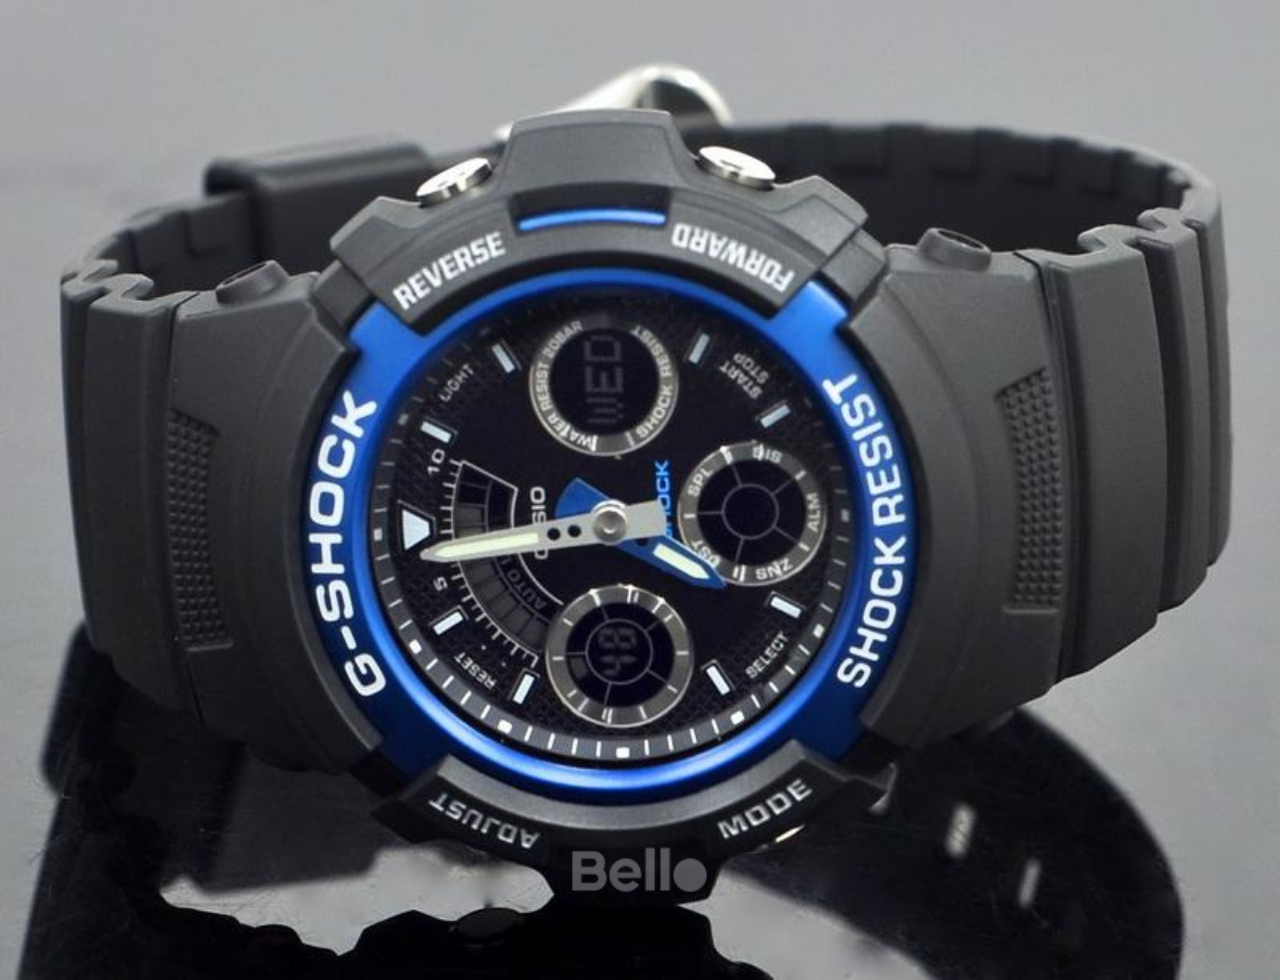 dong-ho-g-shock-aw-591